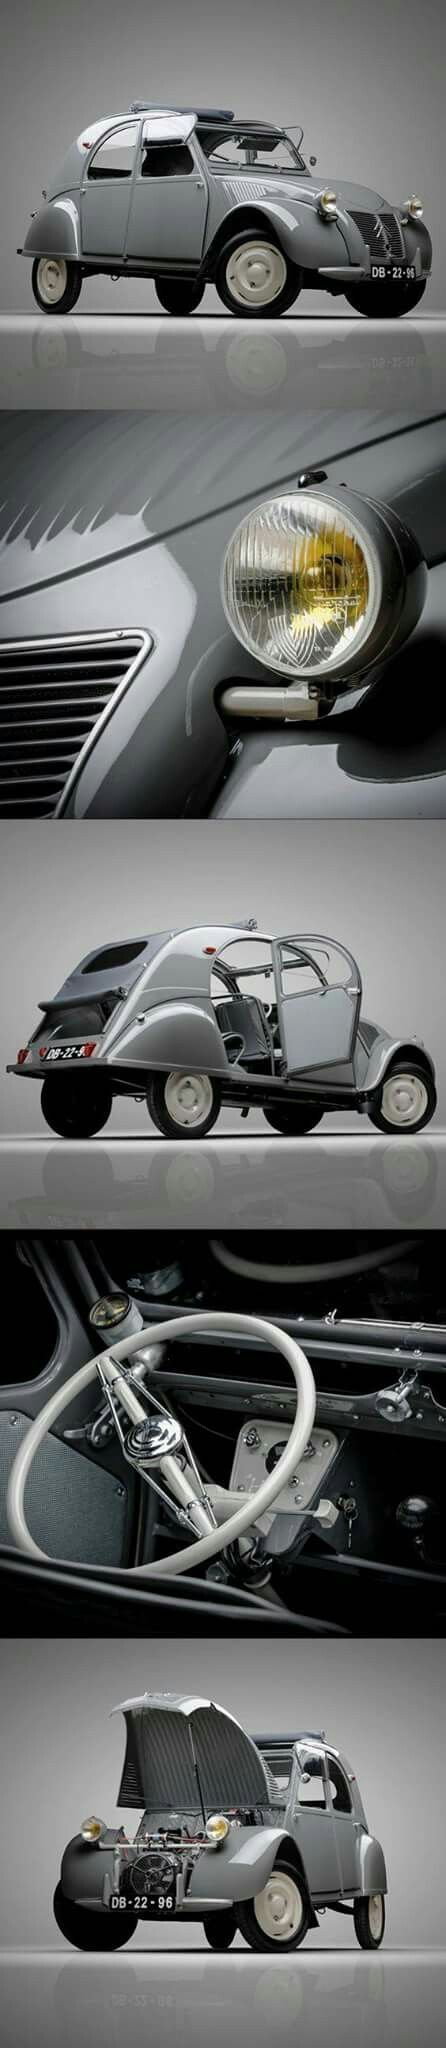 Cool Peugeot 2017 - Citroën 2cv 1948... Check more at http://24car.ga/my-desires/peugeot-2017-citroen-2cv-1948/